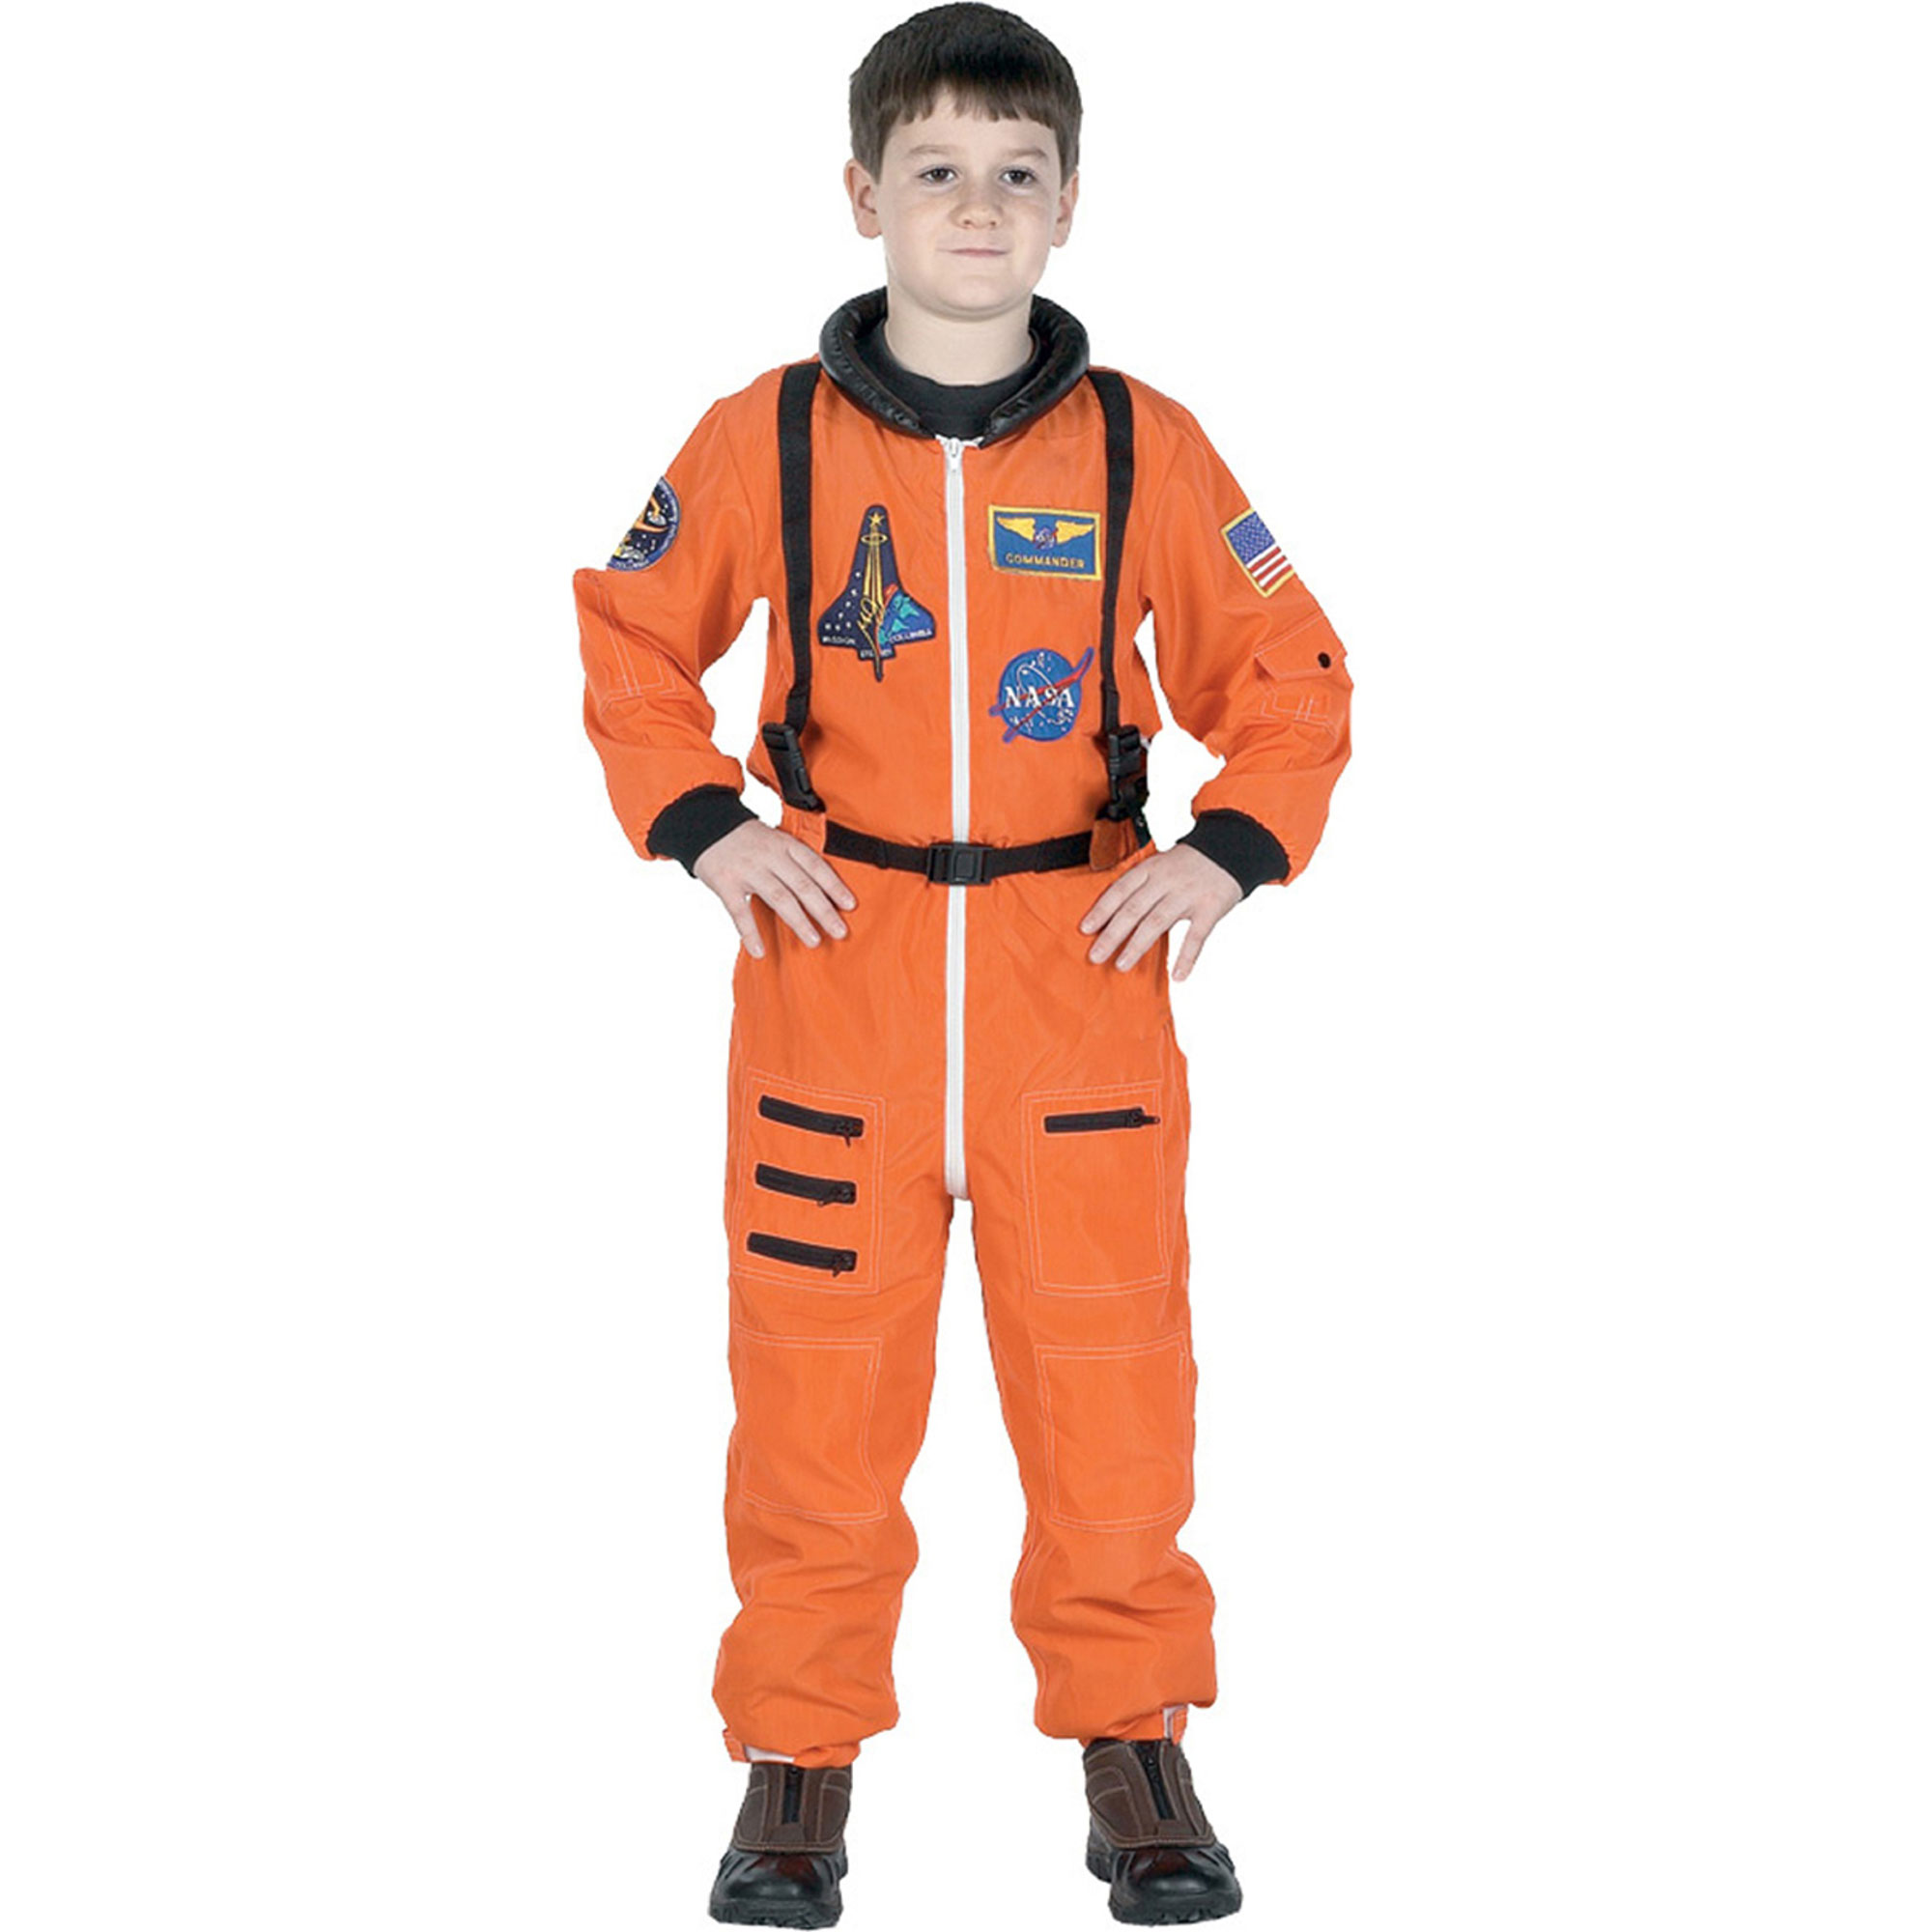 Morris Costumes Boys Orange Astronaut Suit Child Halloween Costume Large 8-10, Style, AR52MD